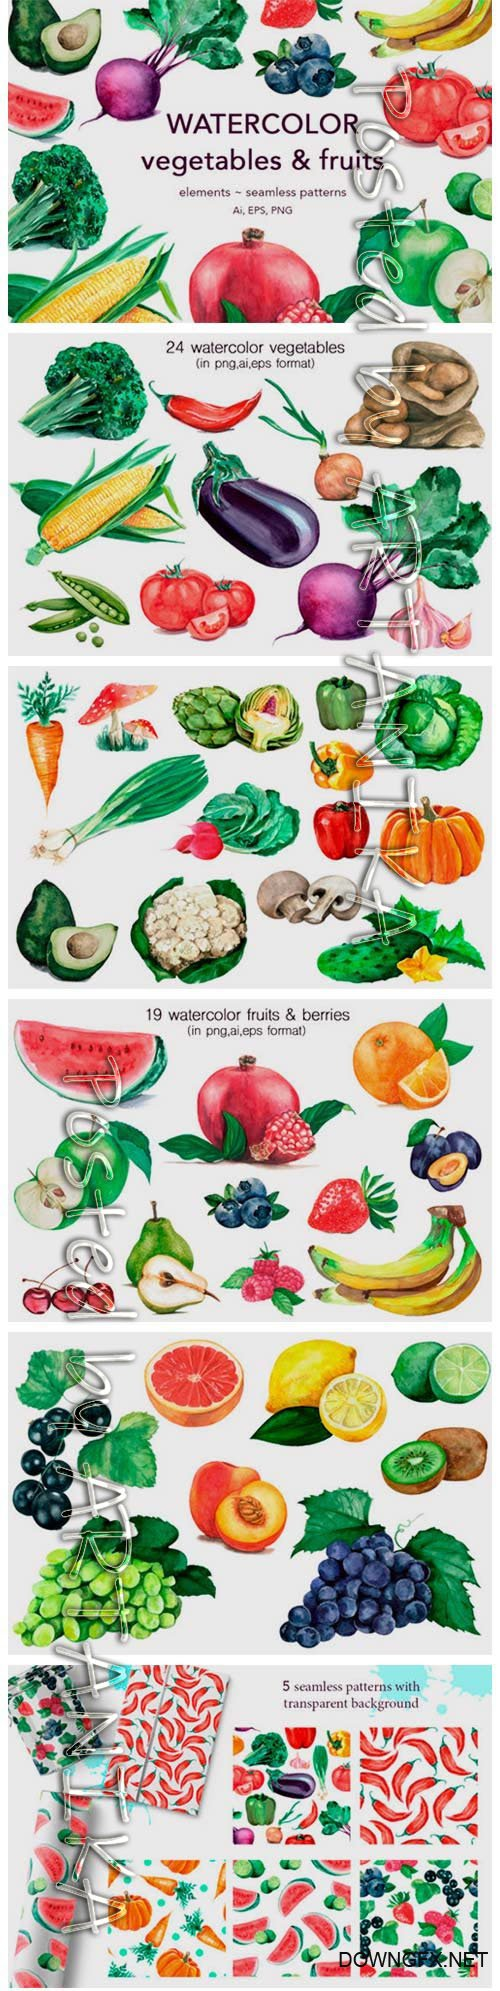 Watercolor Vegetables & Fruits 2151243